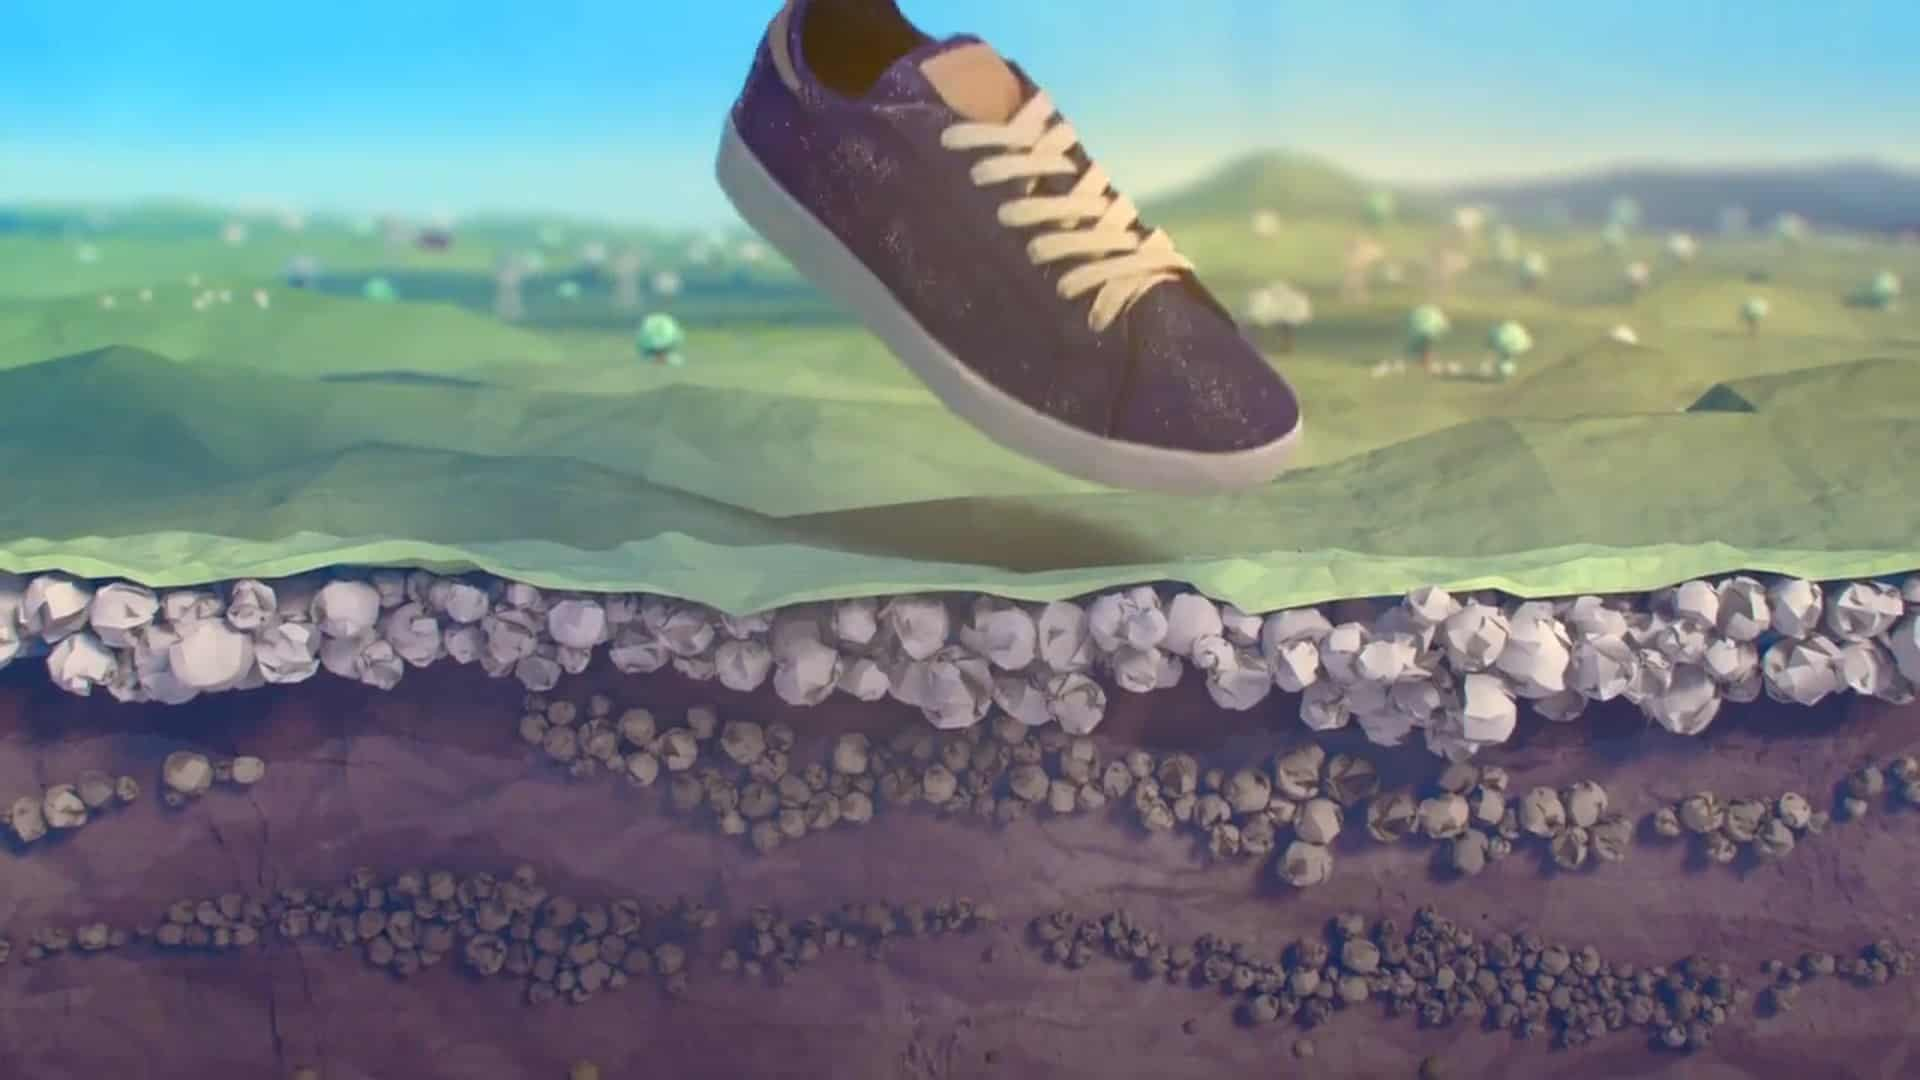 ed4b6f1b861 Reebok Introduces Compostable Sneaker Made From Corn And Cotton  Watch